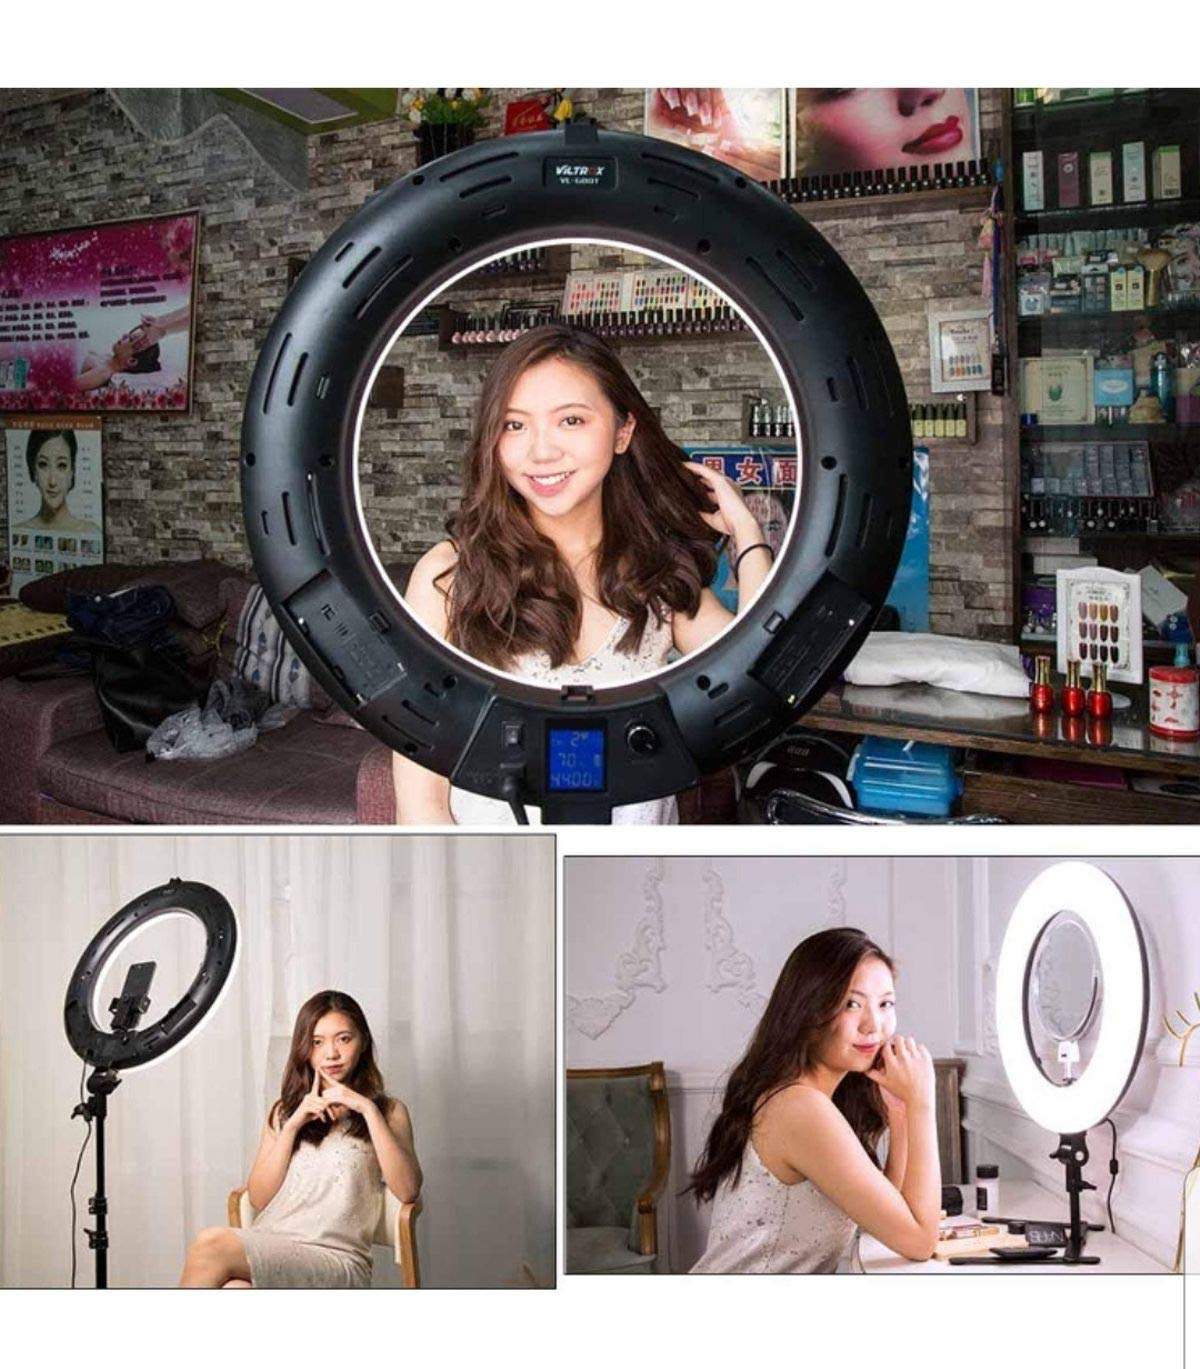 Rednix (DRL-18) 18 inch Professional LED Ring Light for Making Your Videos/Images More Professional, for TIK-tok Videos, YouTube Video Shoot, Best Makeup Shoot, Musically, Instagram & Many More.